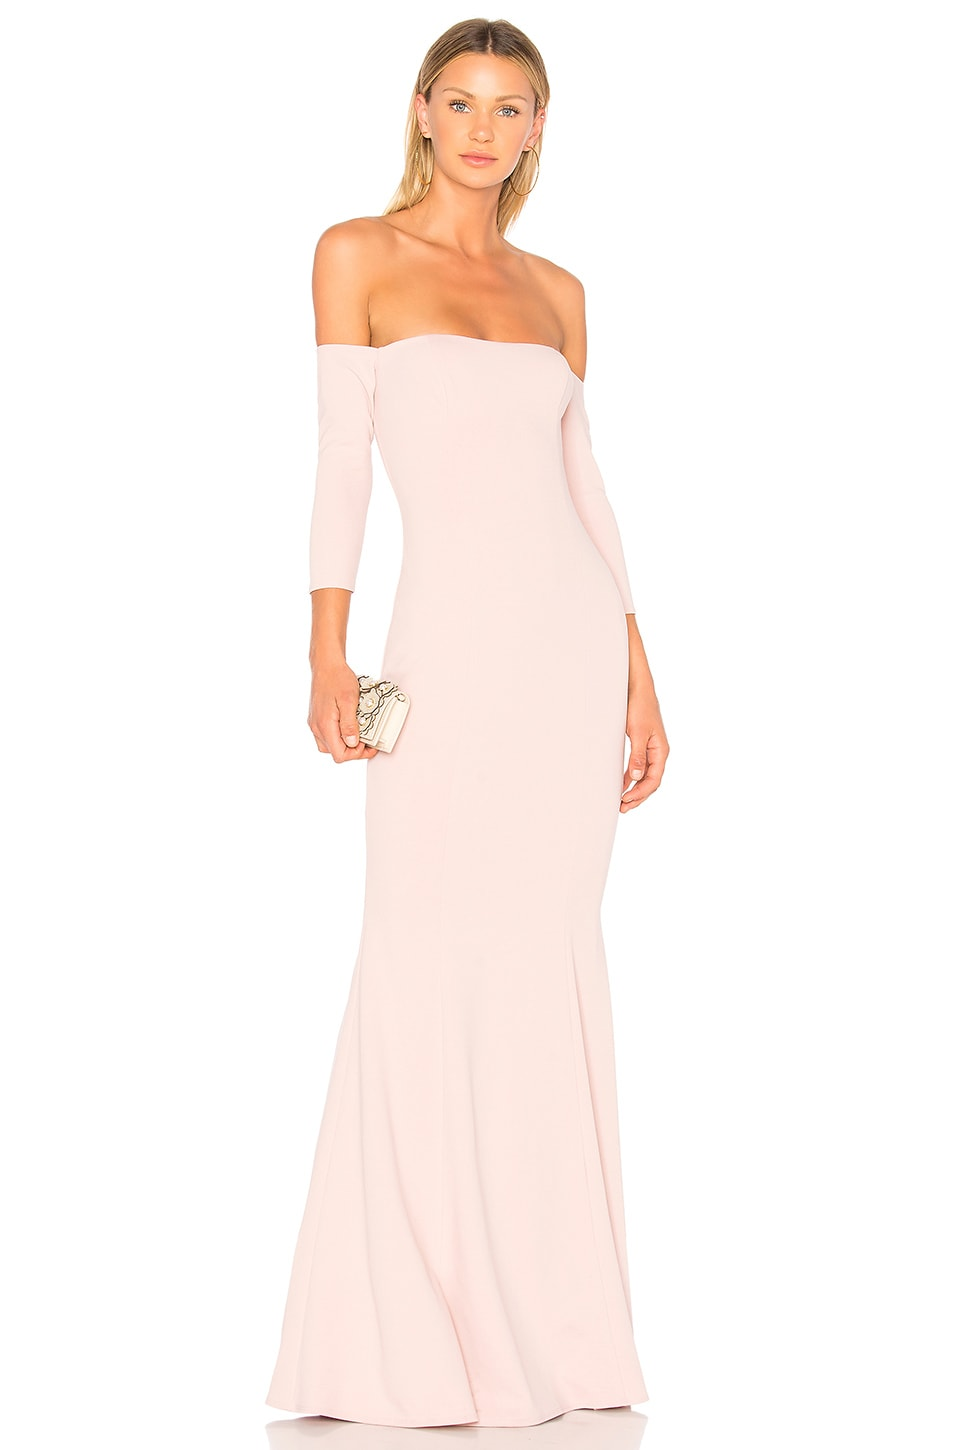 Brentwood Gown